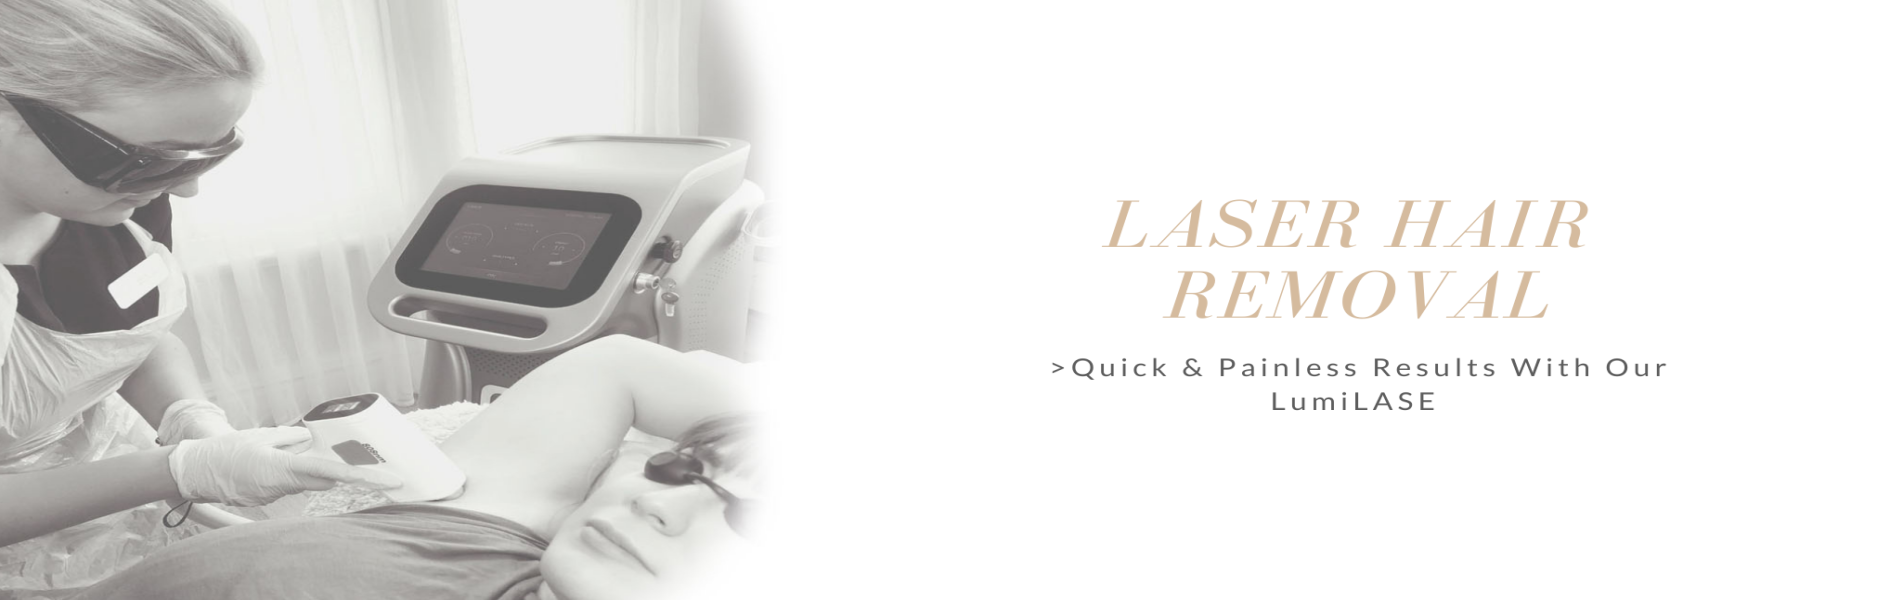 Laser Hair Removal  Kettering , Medical Laser Hair Removal  Kettering Northamptonshire